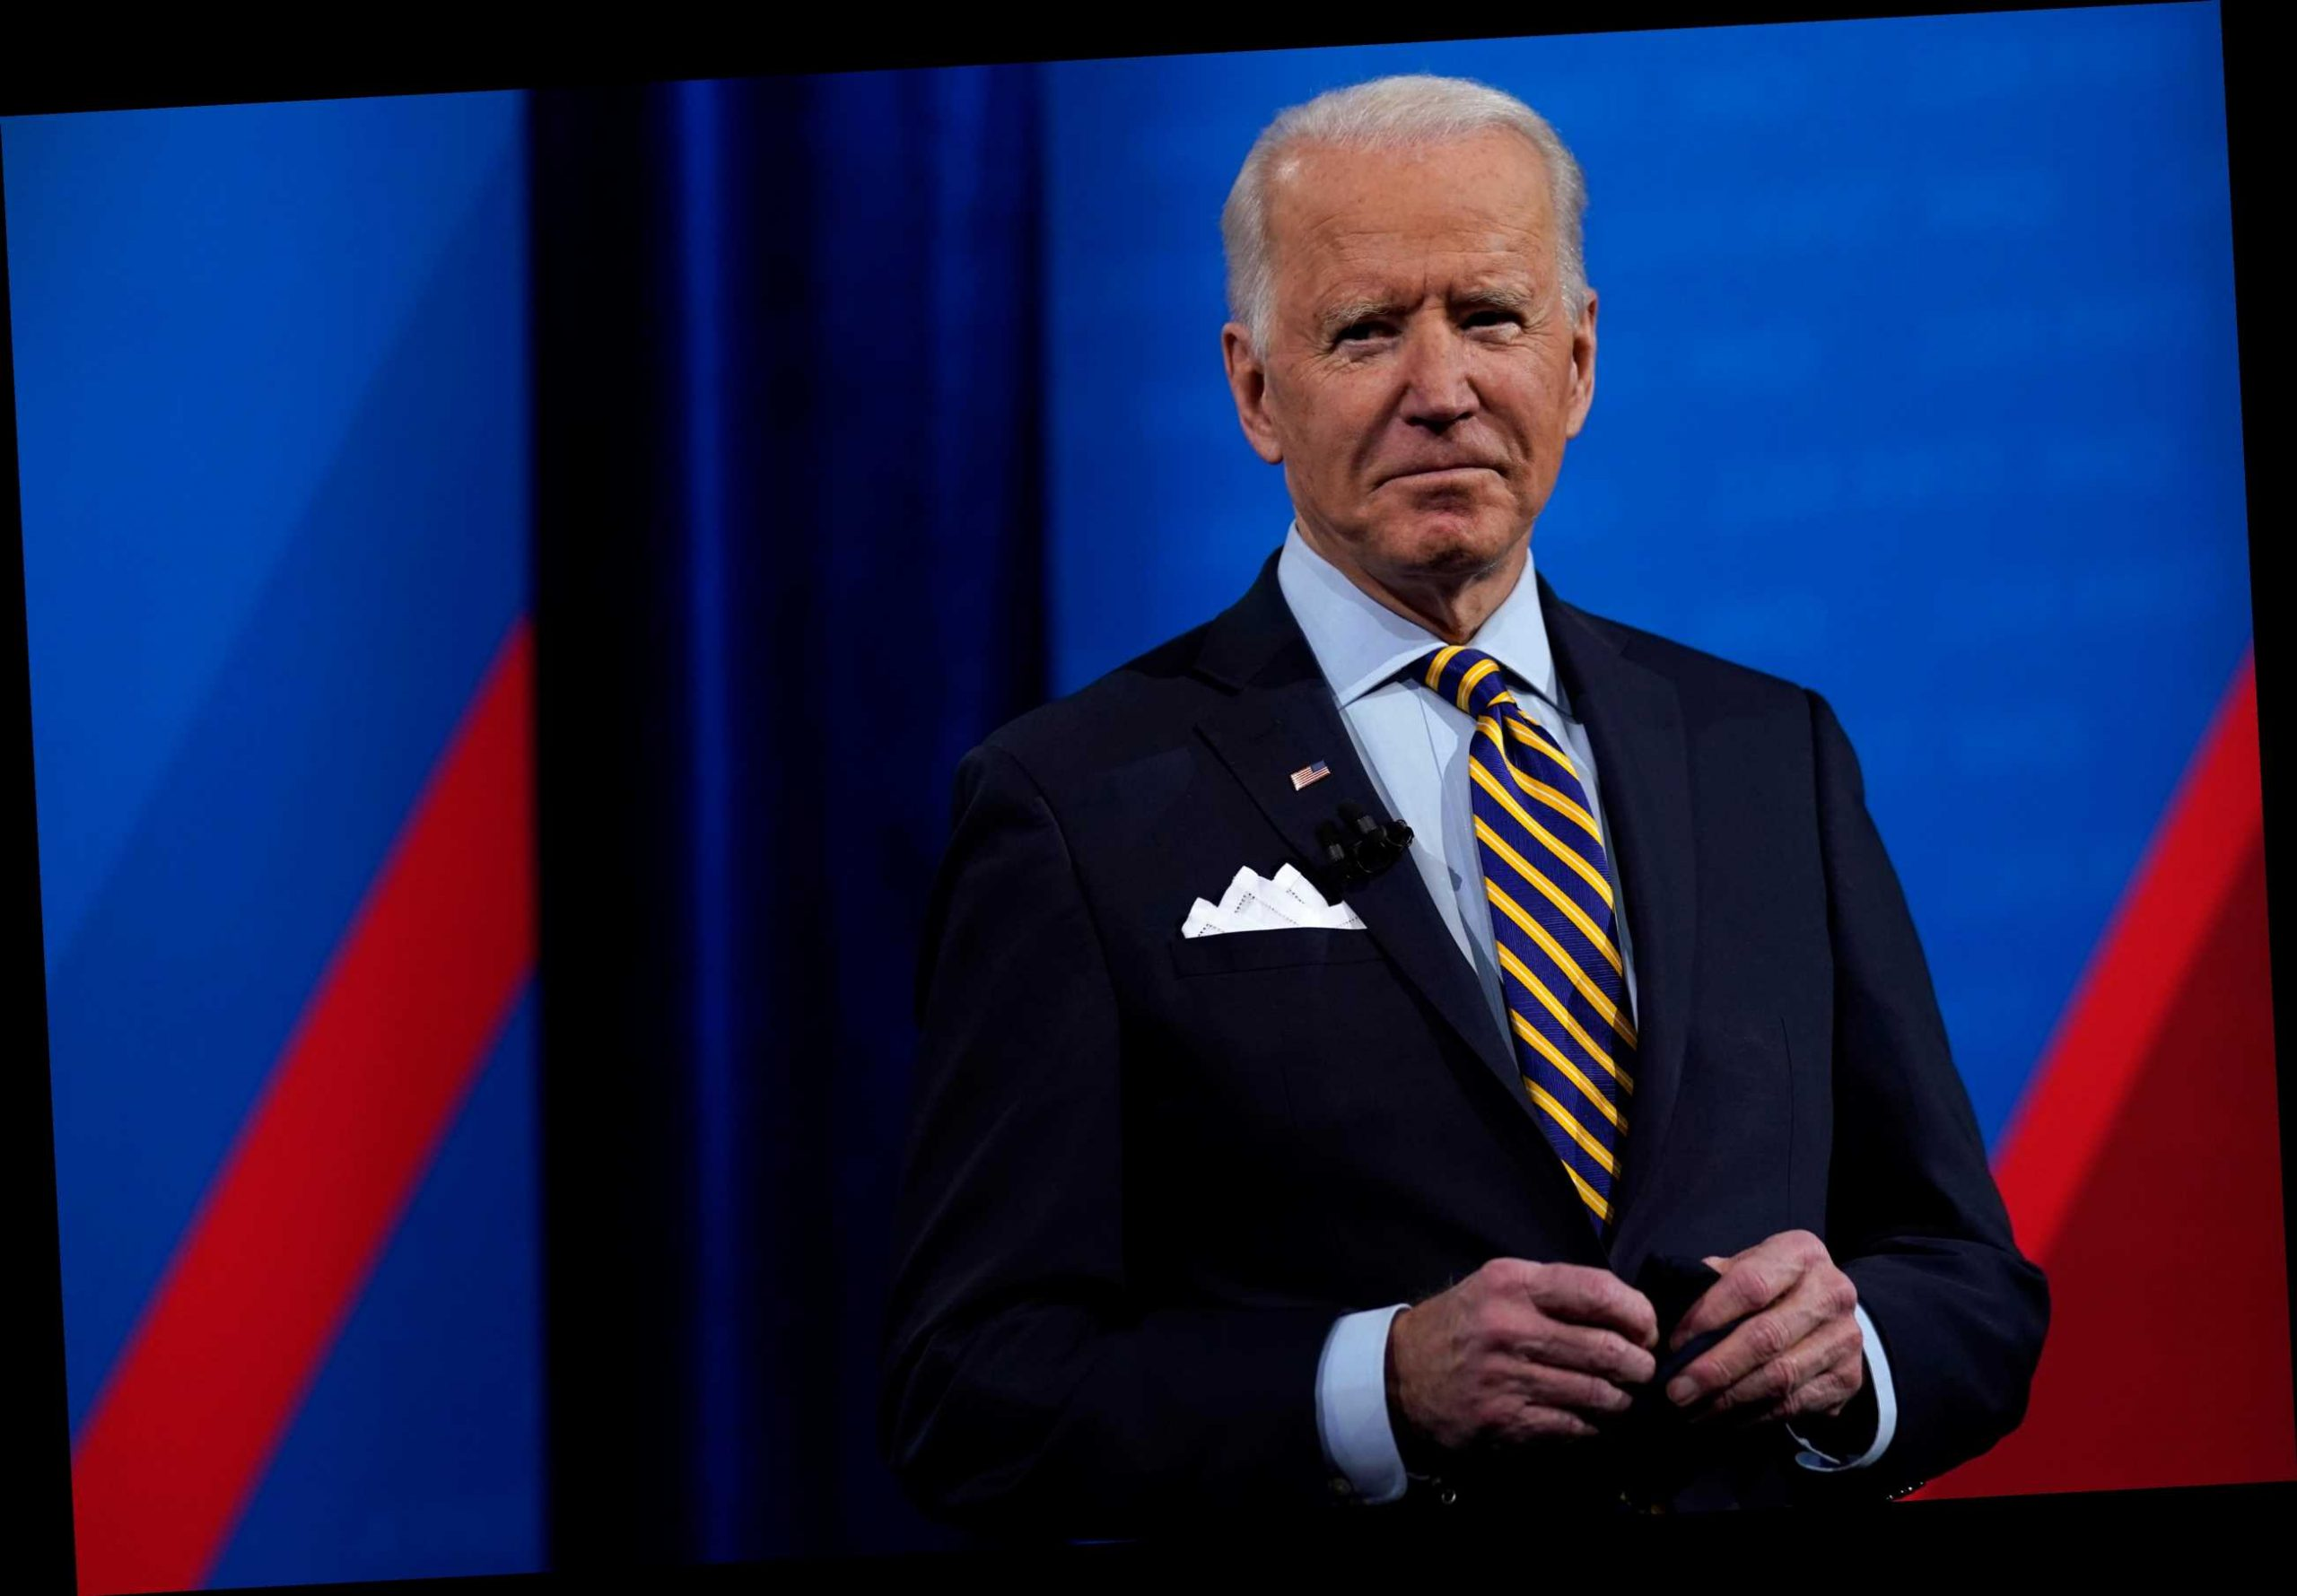 Biden says he's been called by all living ex-presidents 'but one' in veiled attack on 'the former guy' Trump